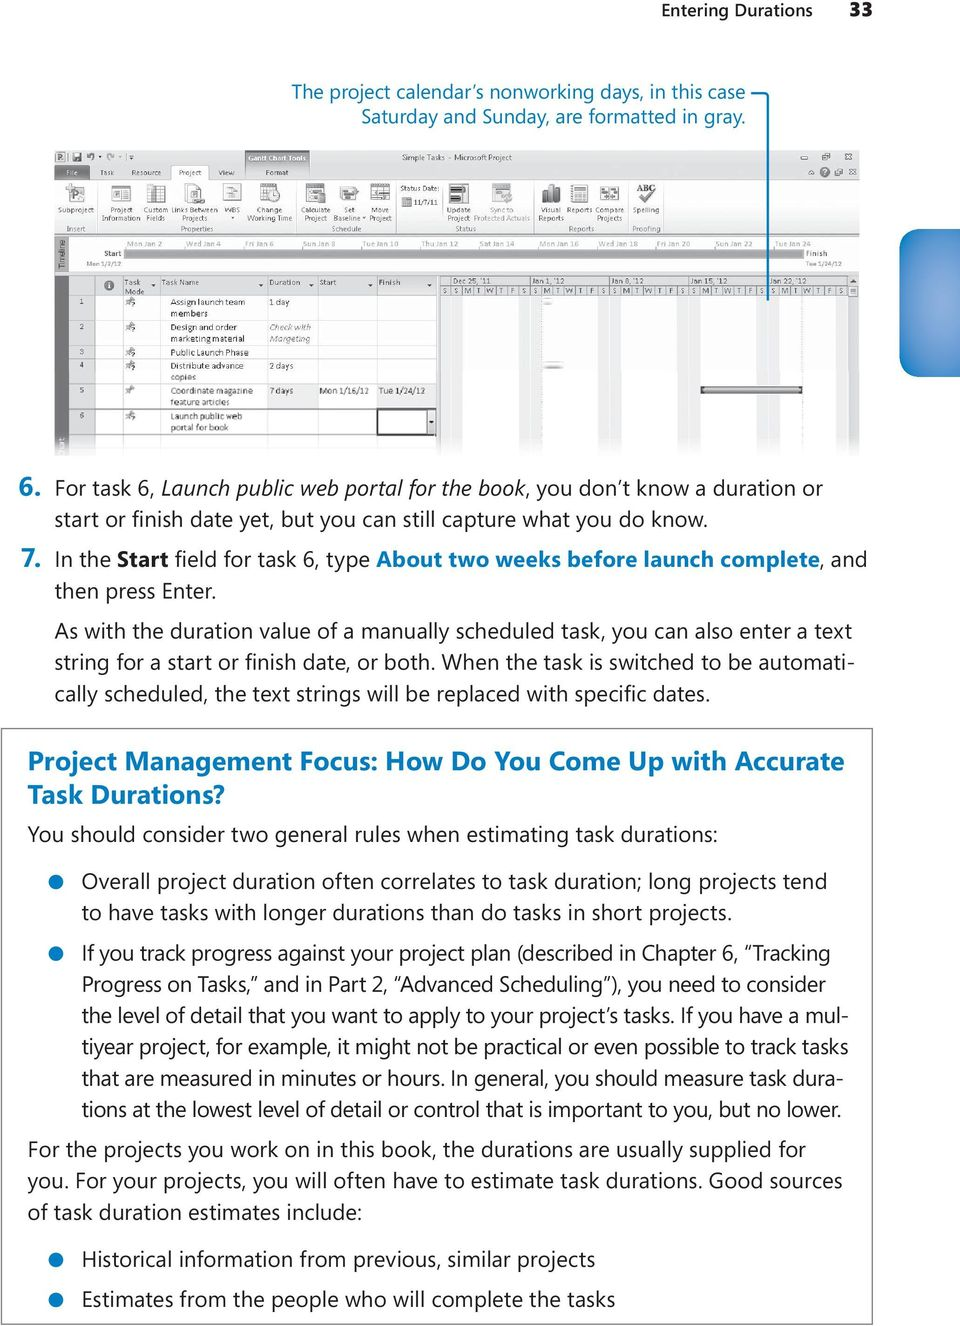 As with the duration value of a manually scheduled task, you can also enter a text - Project Management Focus: How Do You Come Up with Accurate Task Durations?